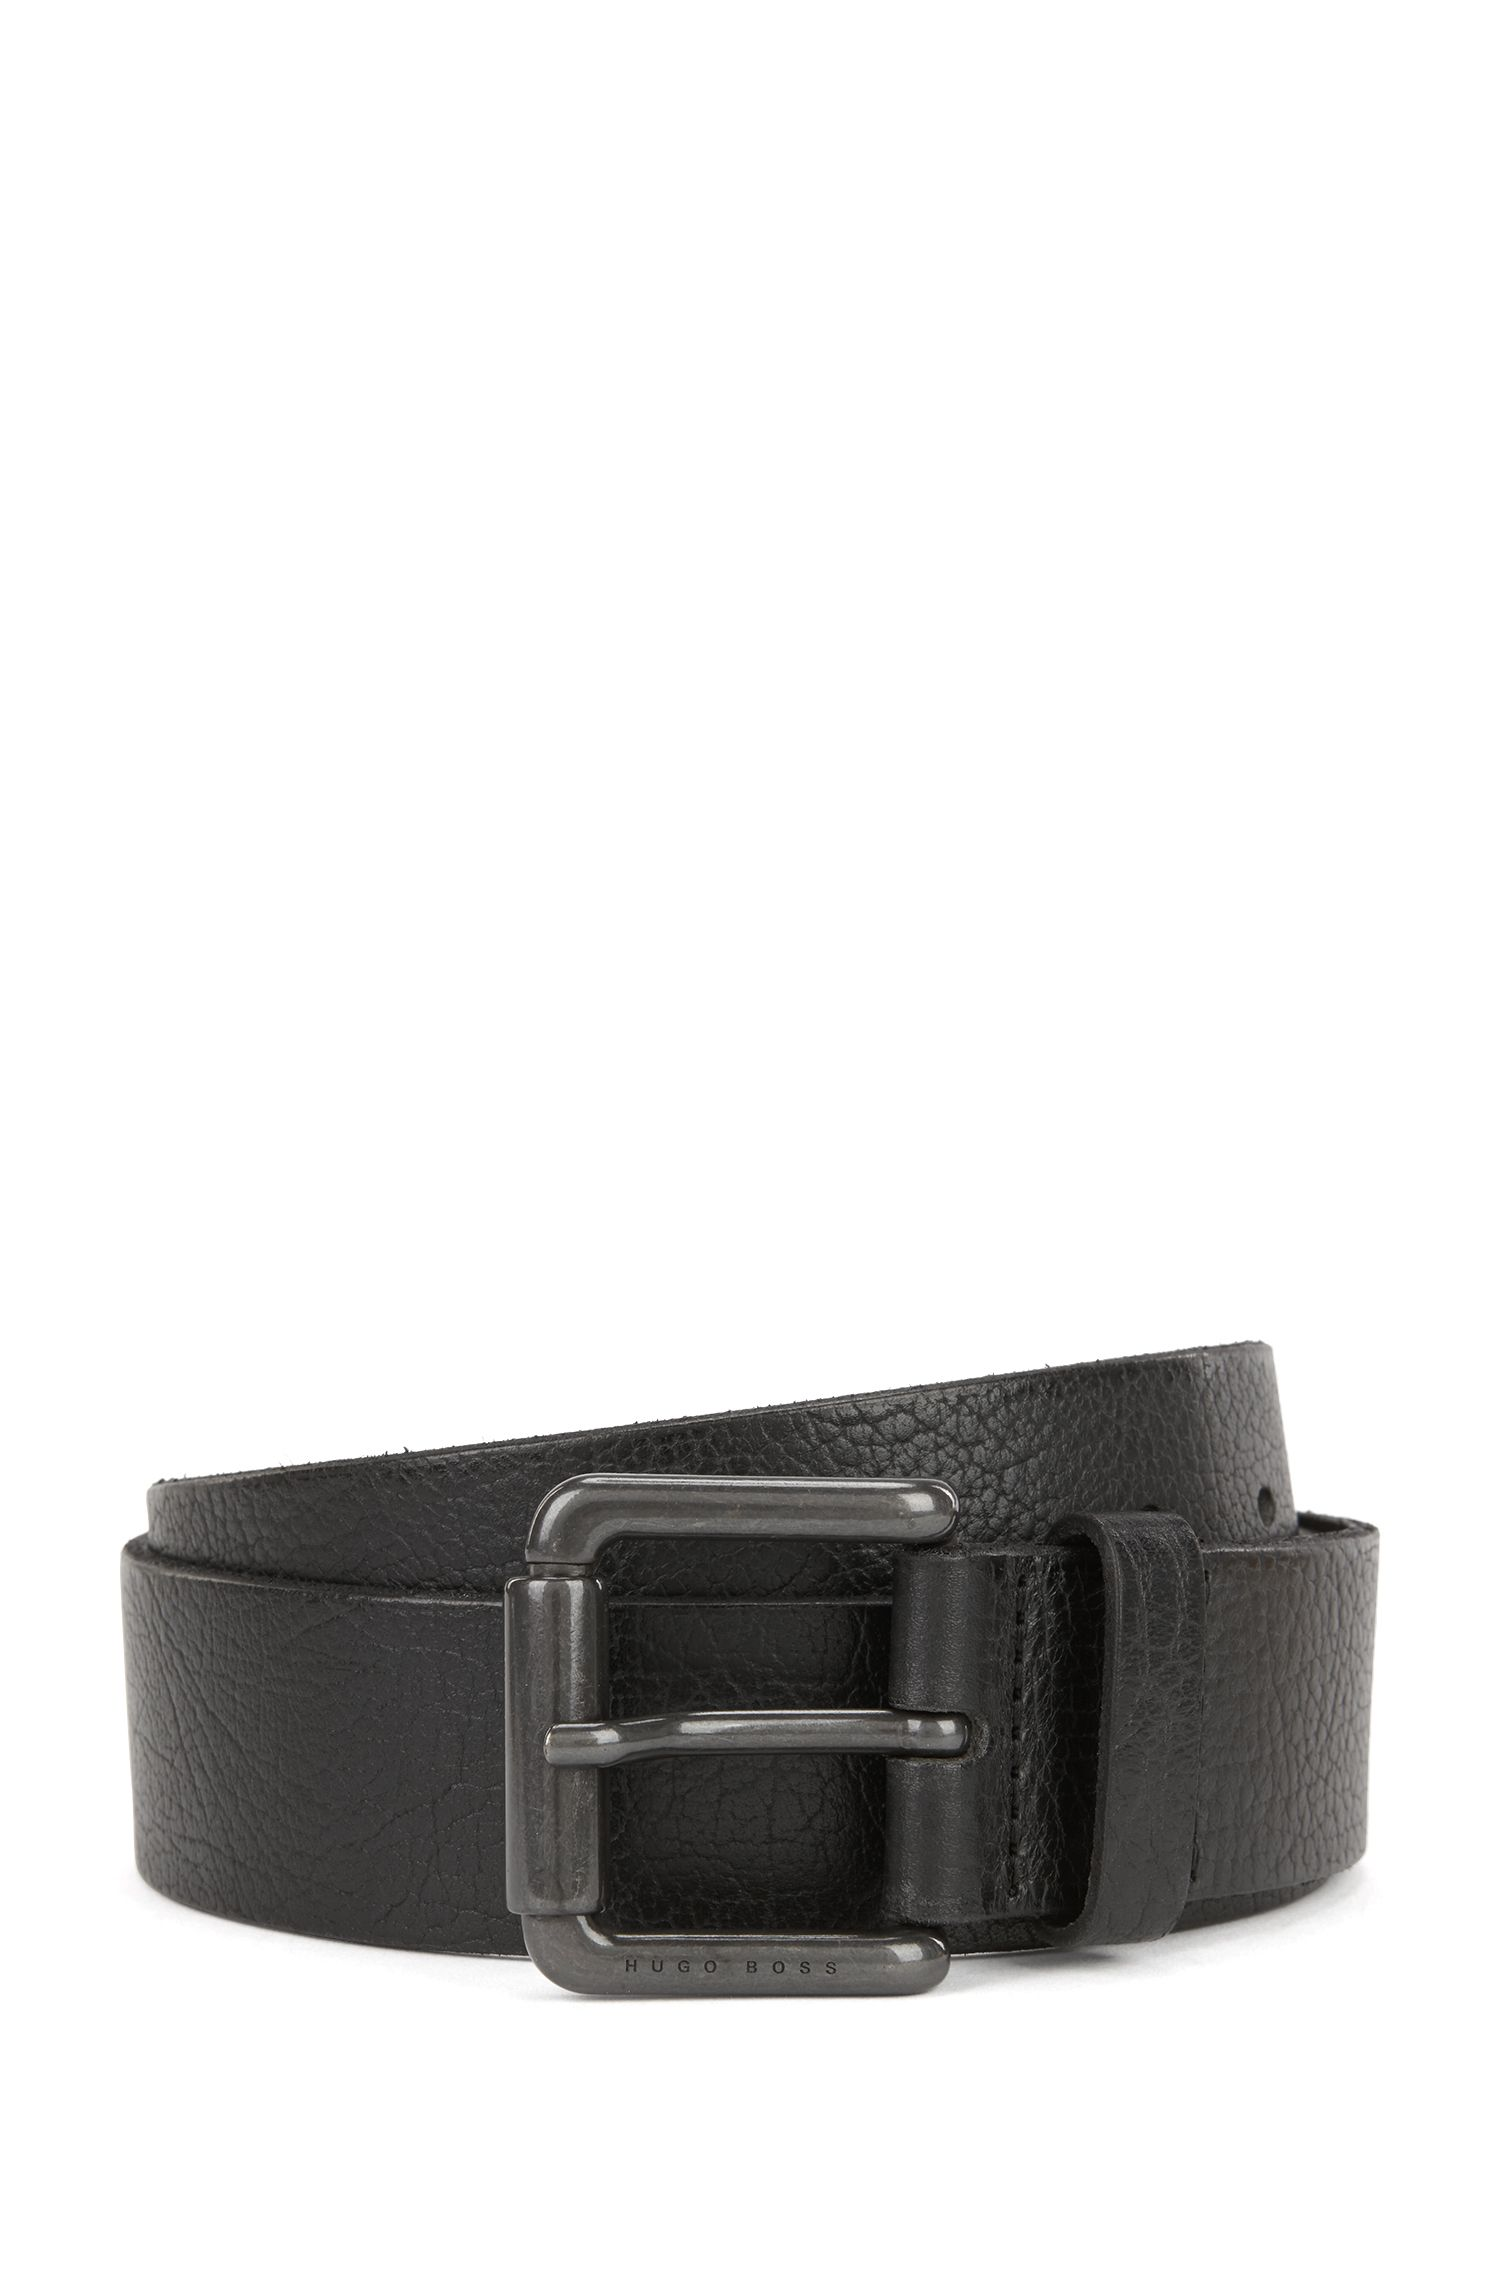 Grainy leather belt with gunmetal roller buckle